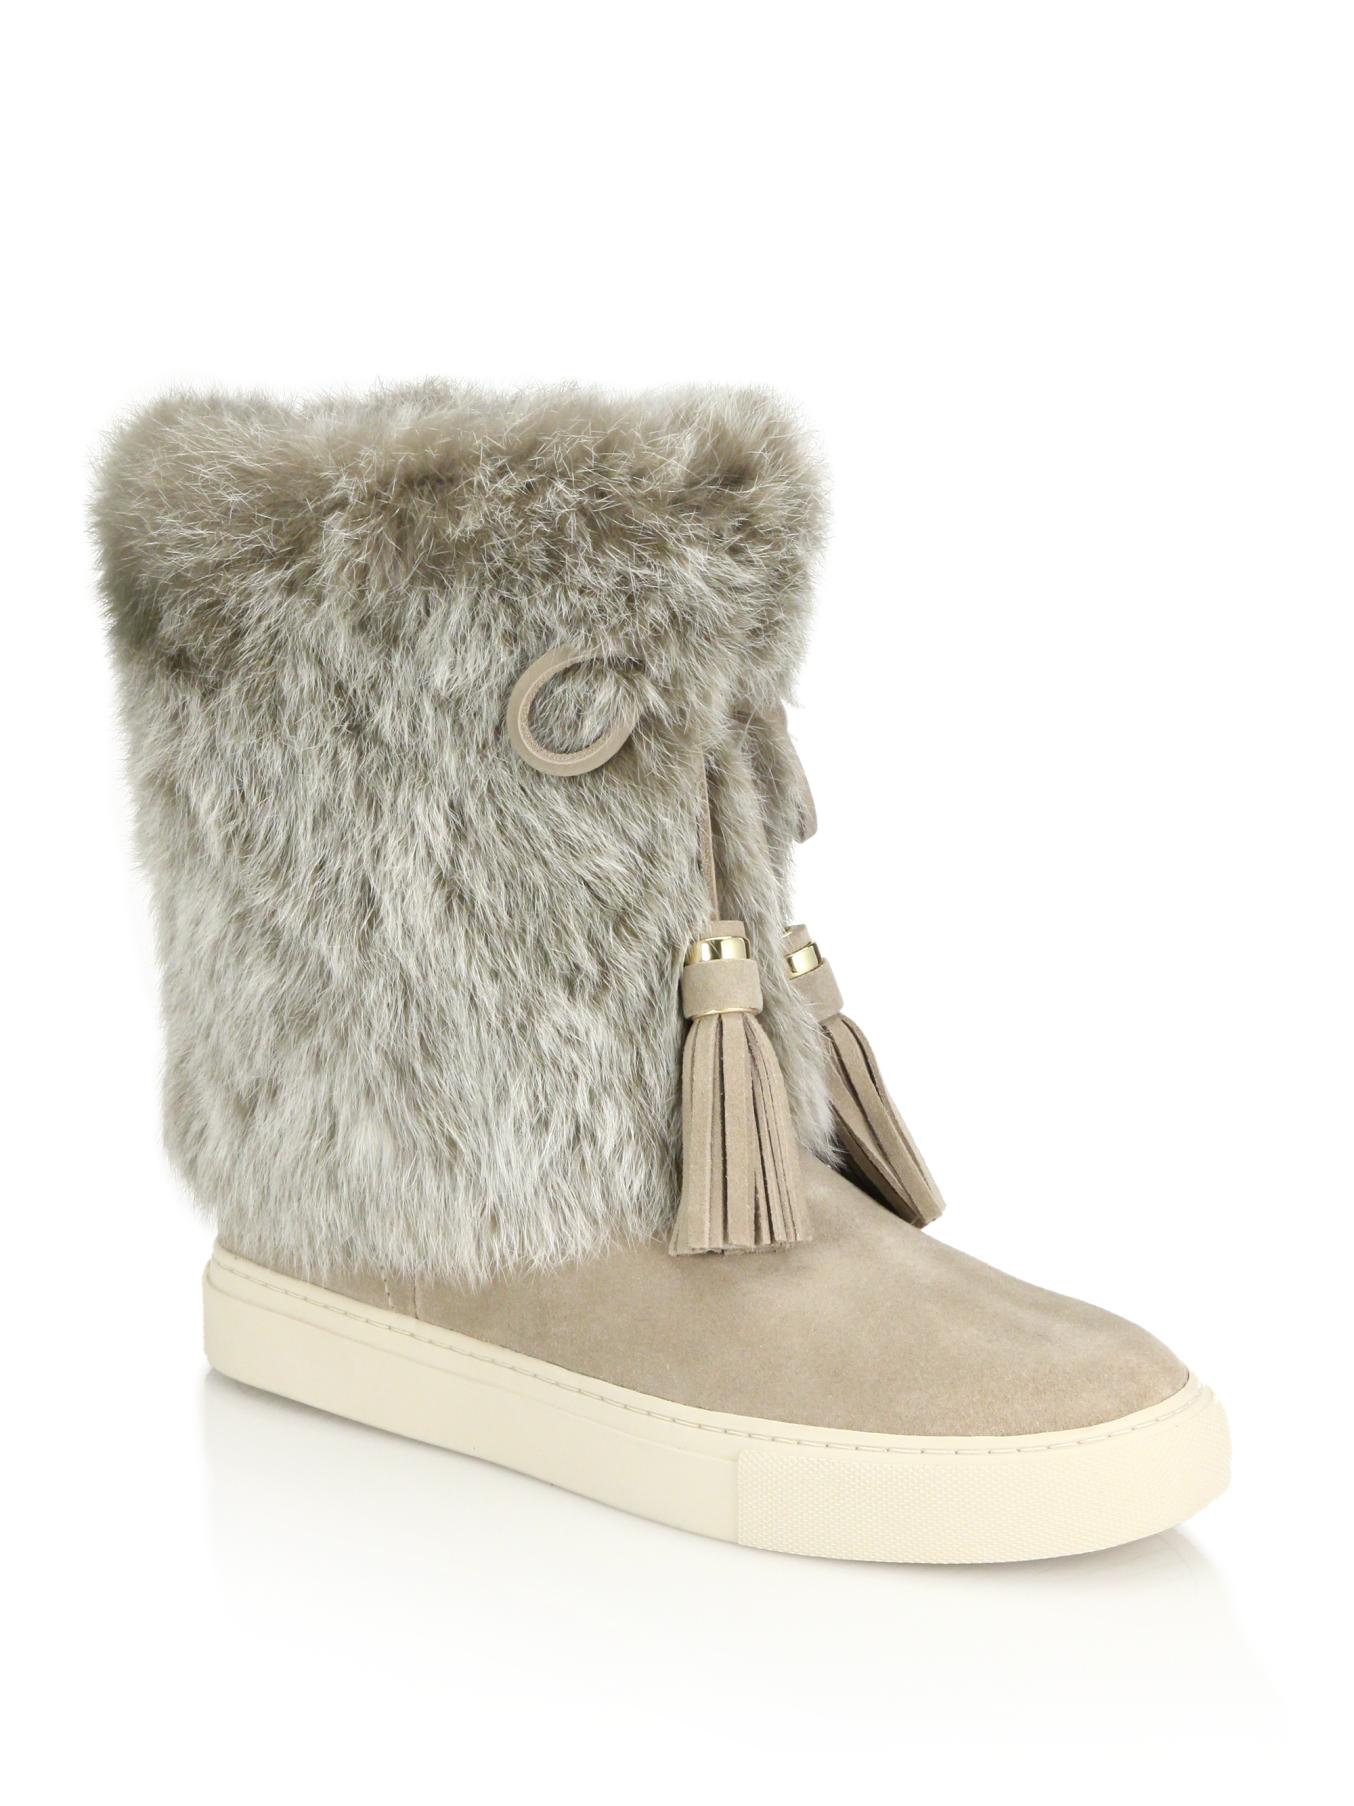 Manchester sale online Tory Burch Anjelica Rabbit Fur Boots clearance explore cheap authentic outlet 2014 cheap sale clearance deals KKafDqF